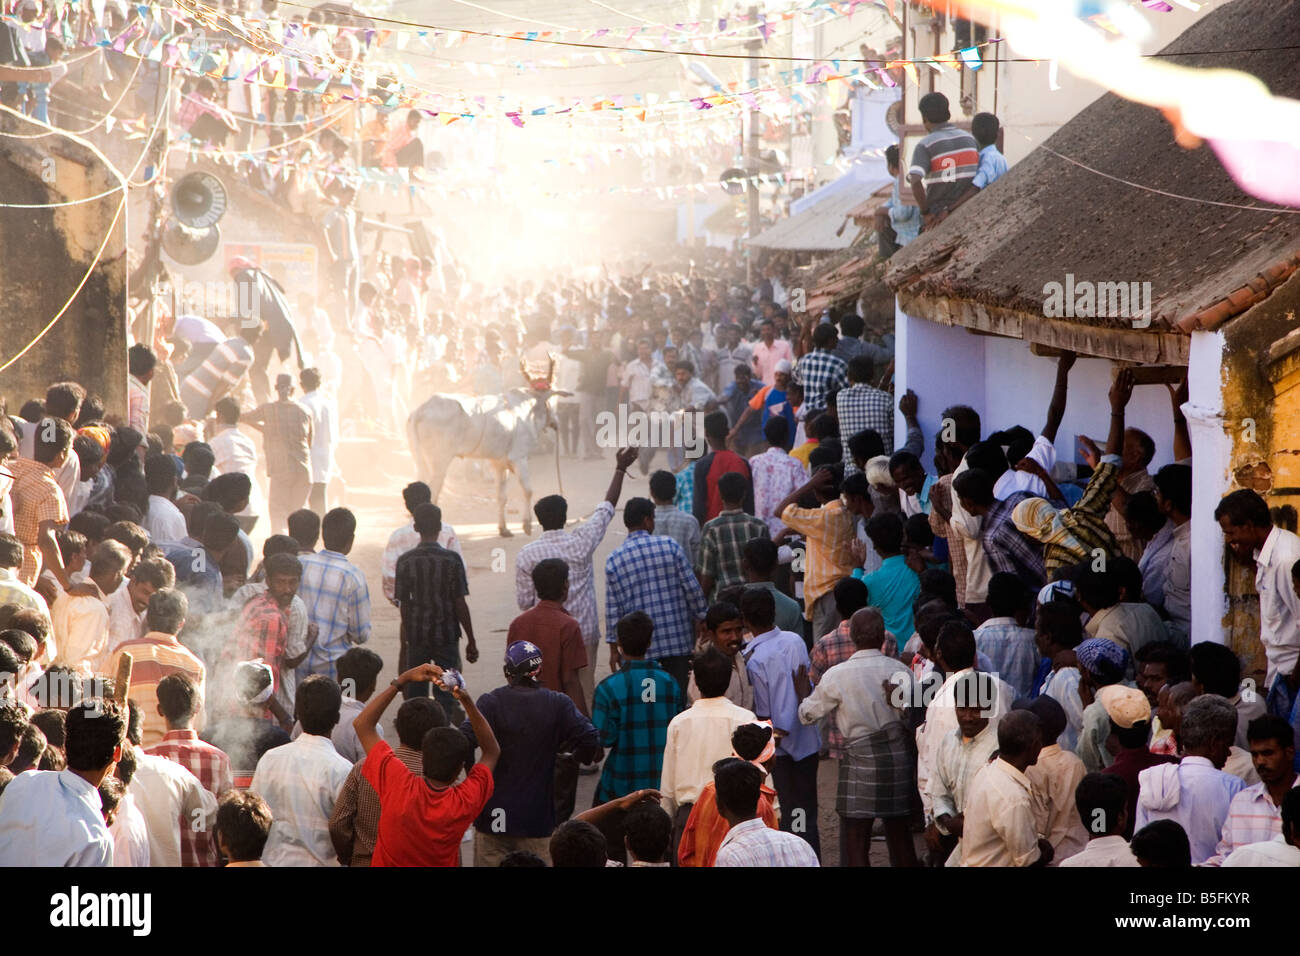 A bull stops running and charges bystanders on a street of a Tamil Nadu village as part of Pongal festivities. - Stock Image